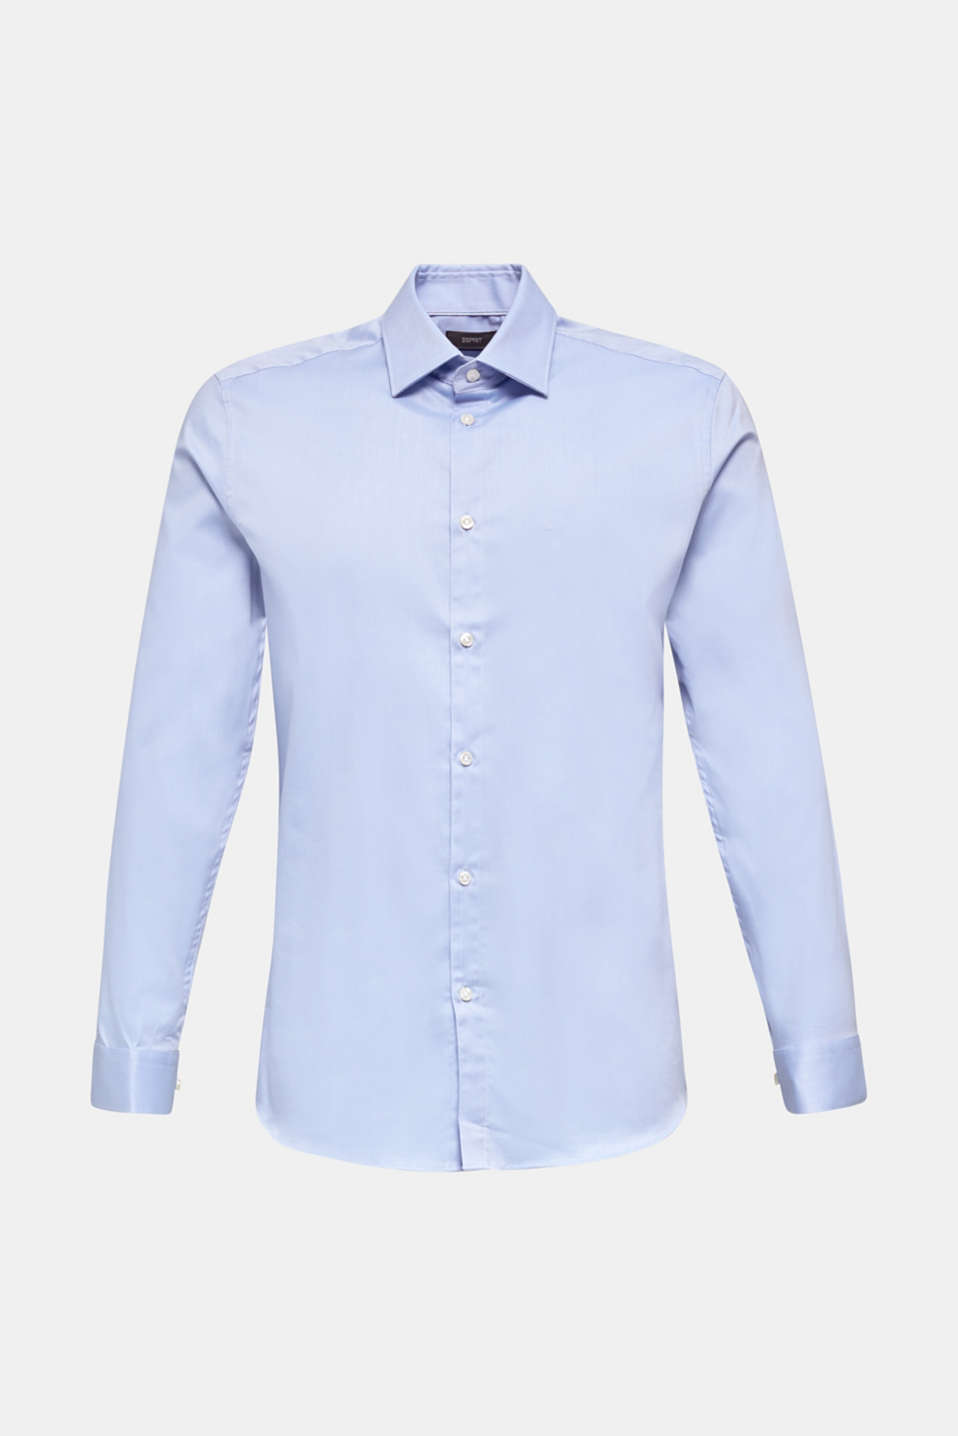 Textured shirt made of 100% cotton, LIGHT BLUE 5, detail image number 7